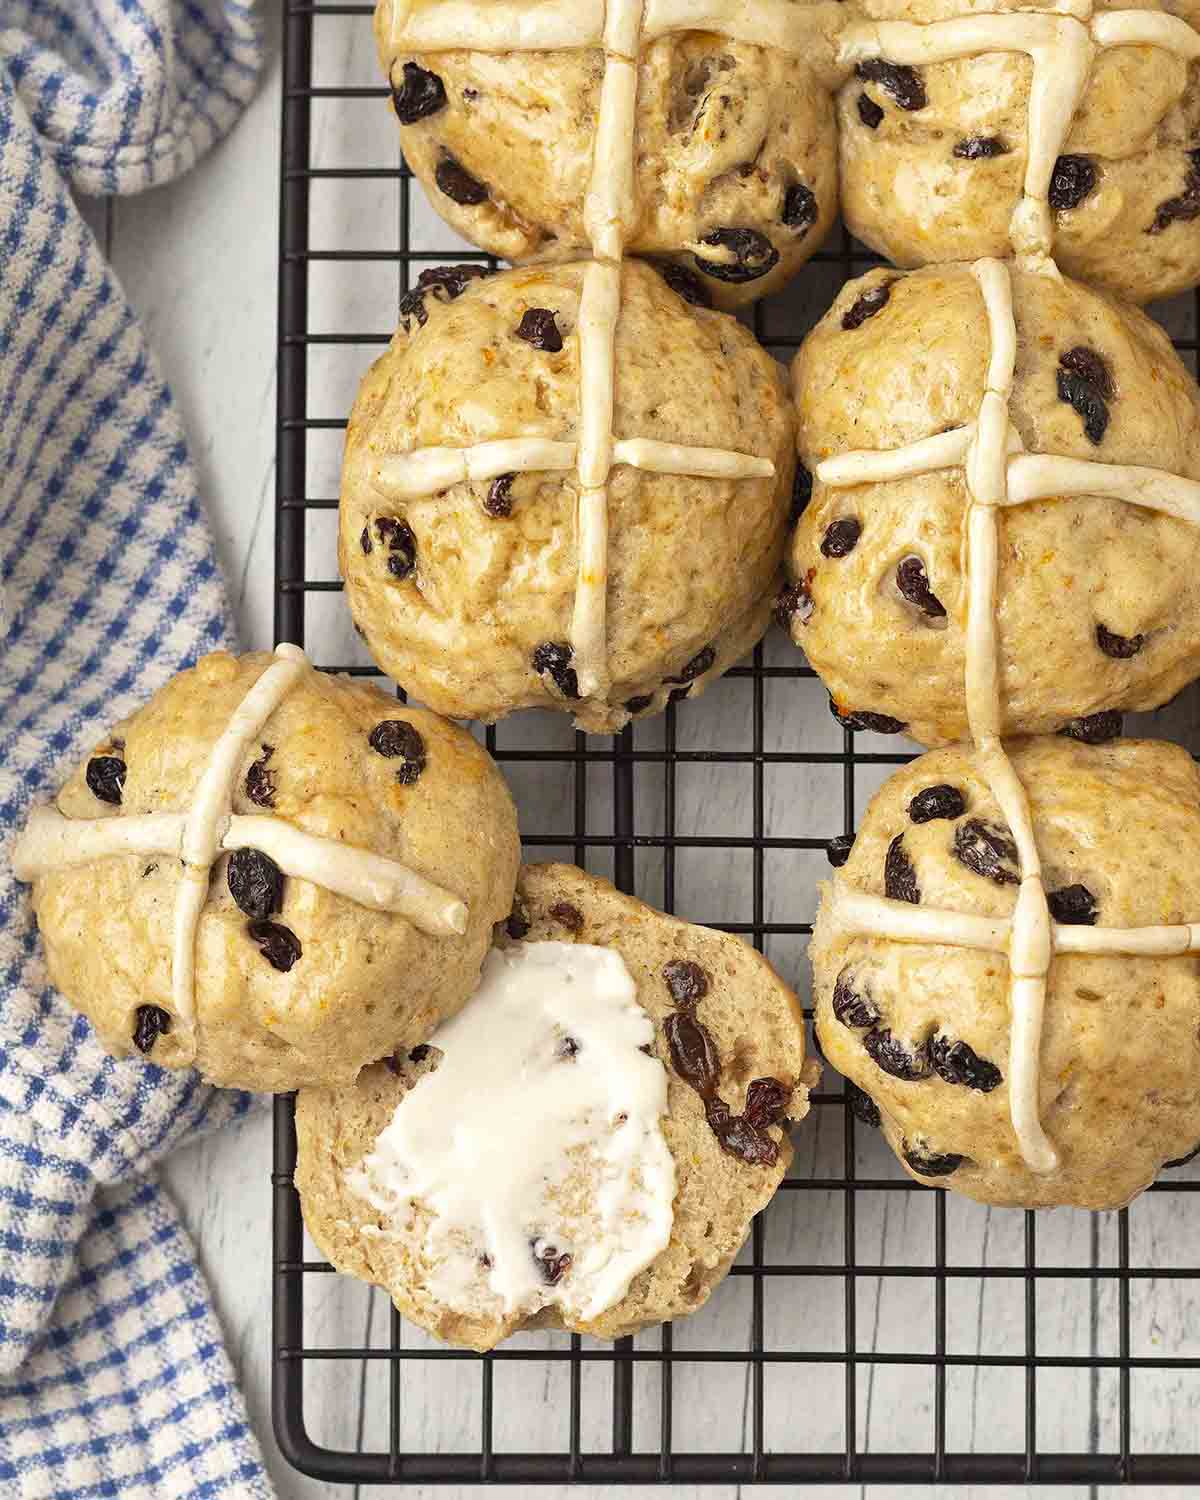 An overhead shot of hot cross buns on a cooling rack, one bun is split and has butter spread on one half.